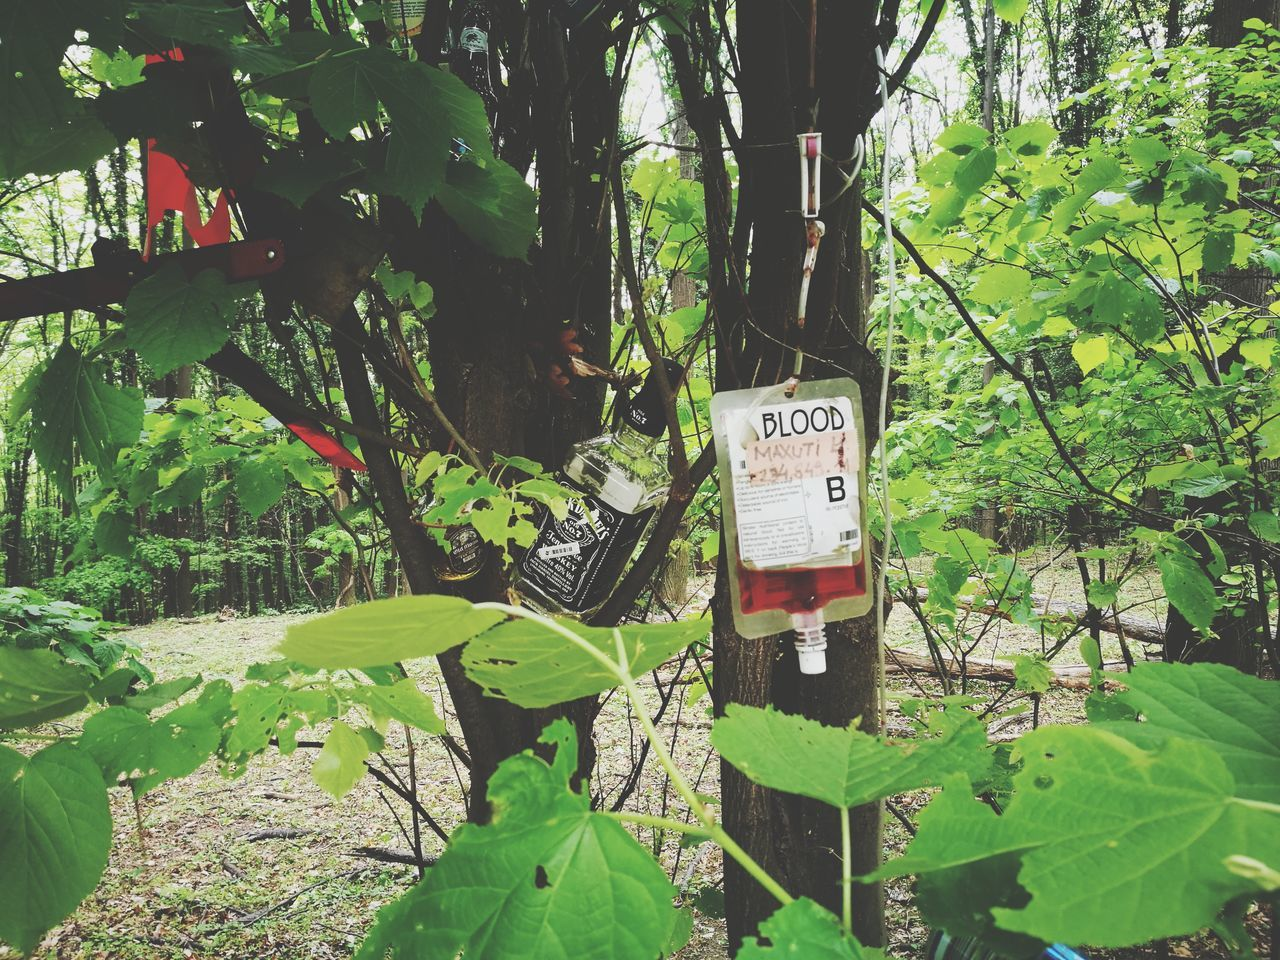 Outdoors Nature Plant Tree BLOODY Blood Jack Daniels Wiskey Wisky Wiskhey Wiskey Bottle Mountain Mountains Mountain View